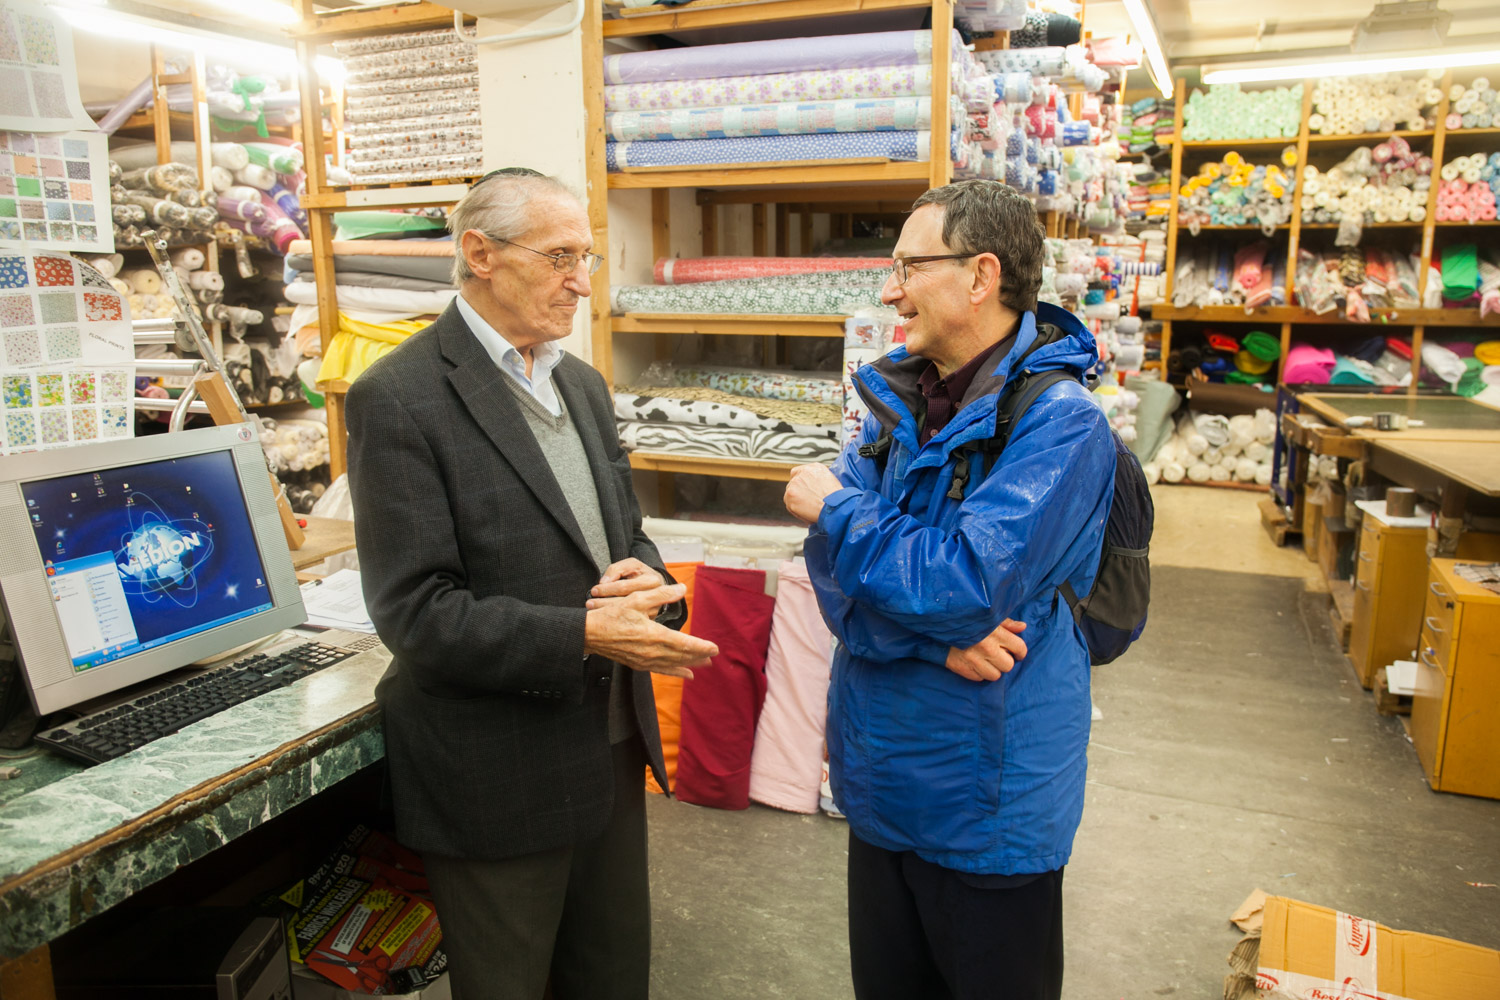 While on a private guided tour with Mark King, you could easily get dragged into conversations with the locals. Here in talks with Leo Epstein of Epra Fabrics in Brick Lane – telling stories about the traders of the old days. Leo, now in his eighties, has been in business since 1956 and never missed a day's work in sixty-three years.